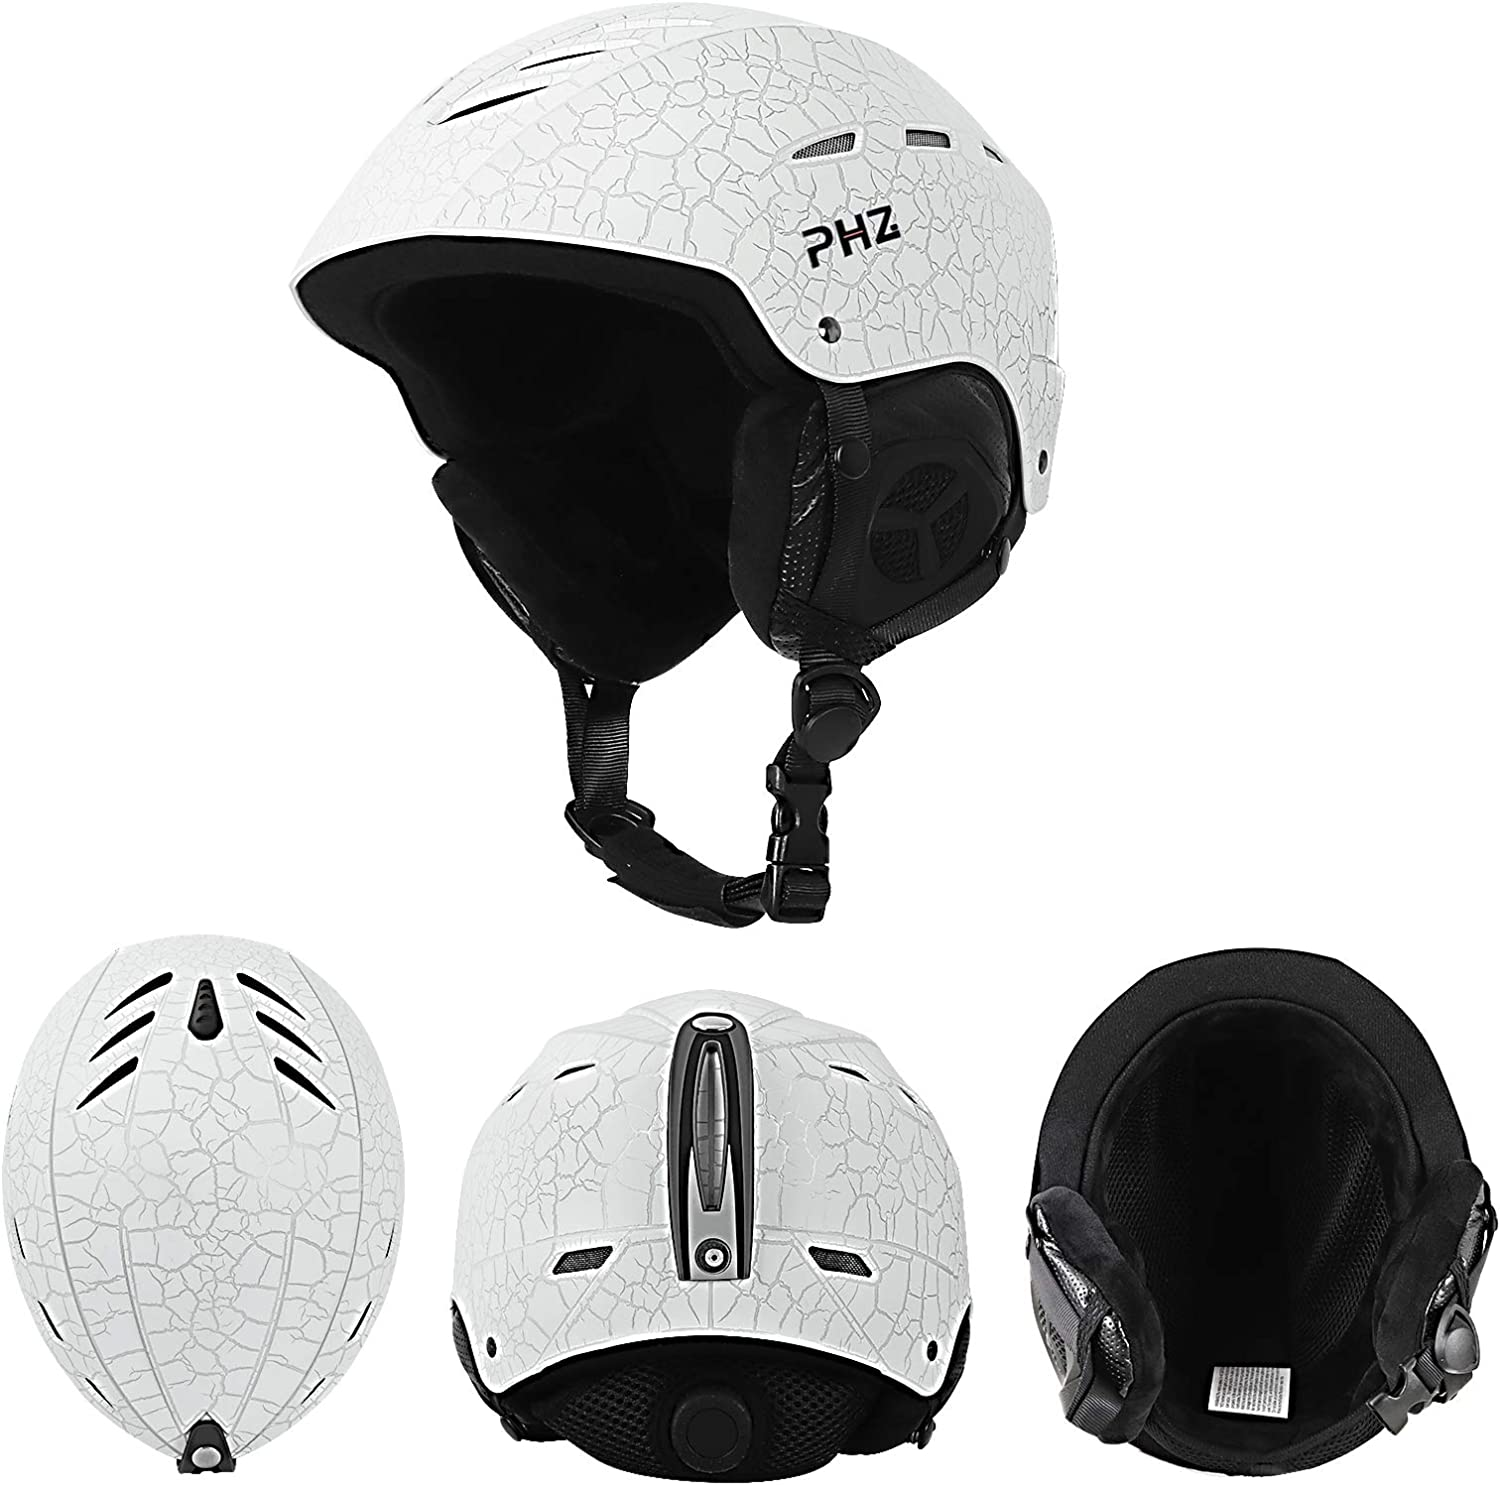 Ski Helmet Snowboard Helmet for Men Women Youth PHZ Goggles Compatible Safety-Certified Snow Sport Helmets Removable Fleece Liner and Ear Pads Performance Safety w//Active Ventilation Dial Fit